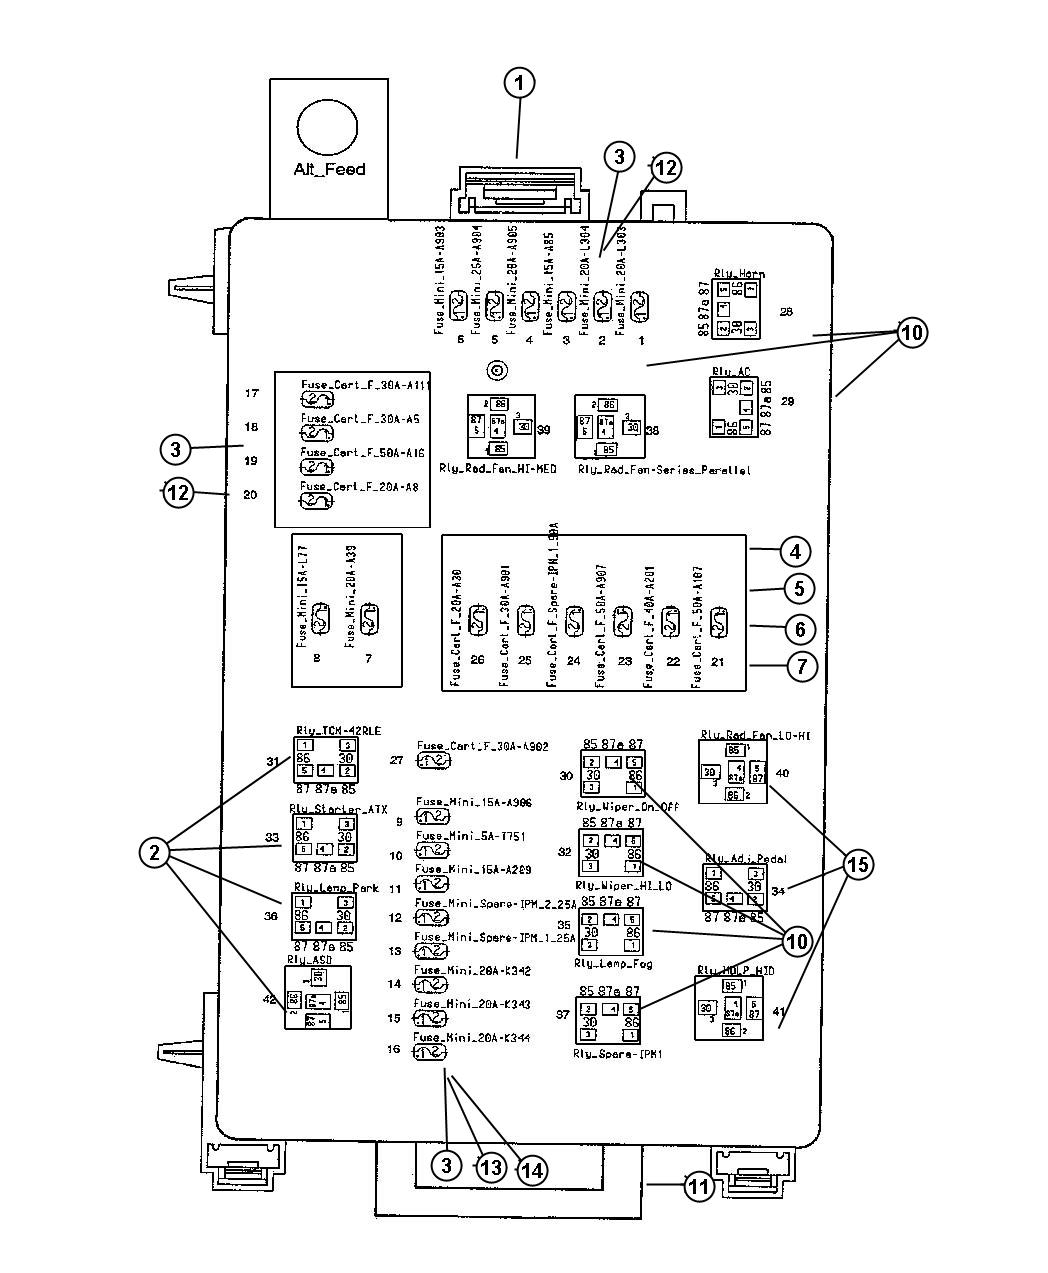 KD_2474] Wiring Diagram On 300 Fuse Box Diagram 2010 Dodge Charger Radio  Download DiagramShopa Bupi Phot Ndine Aryon Hapolo Mohammedshrine Librar Wiring 101